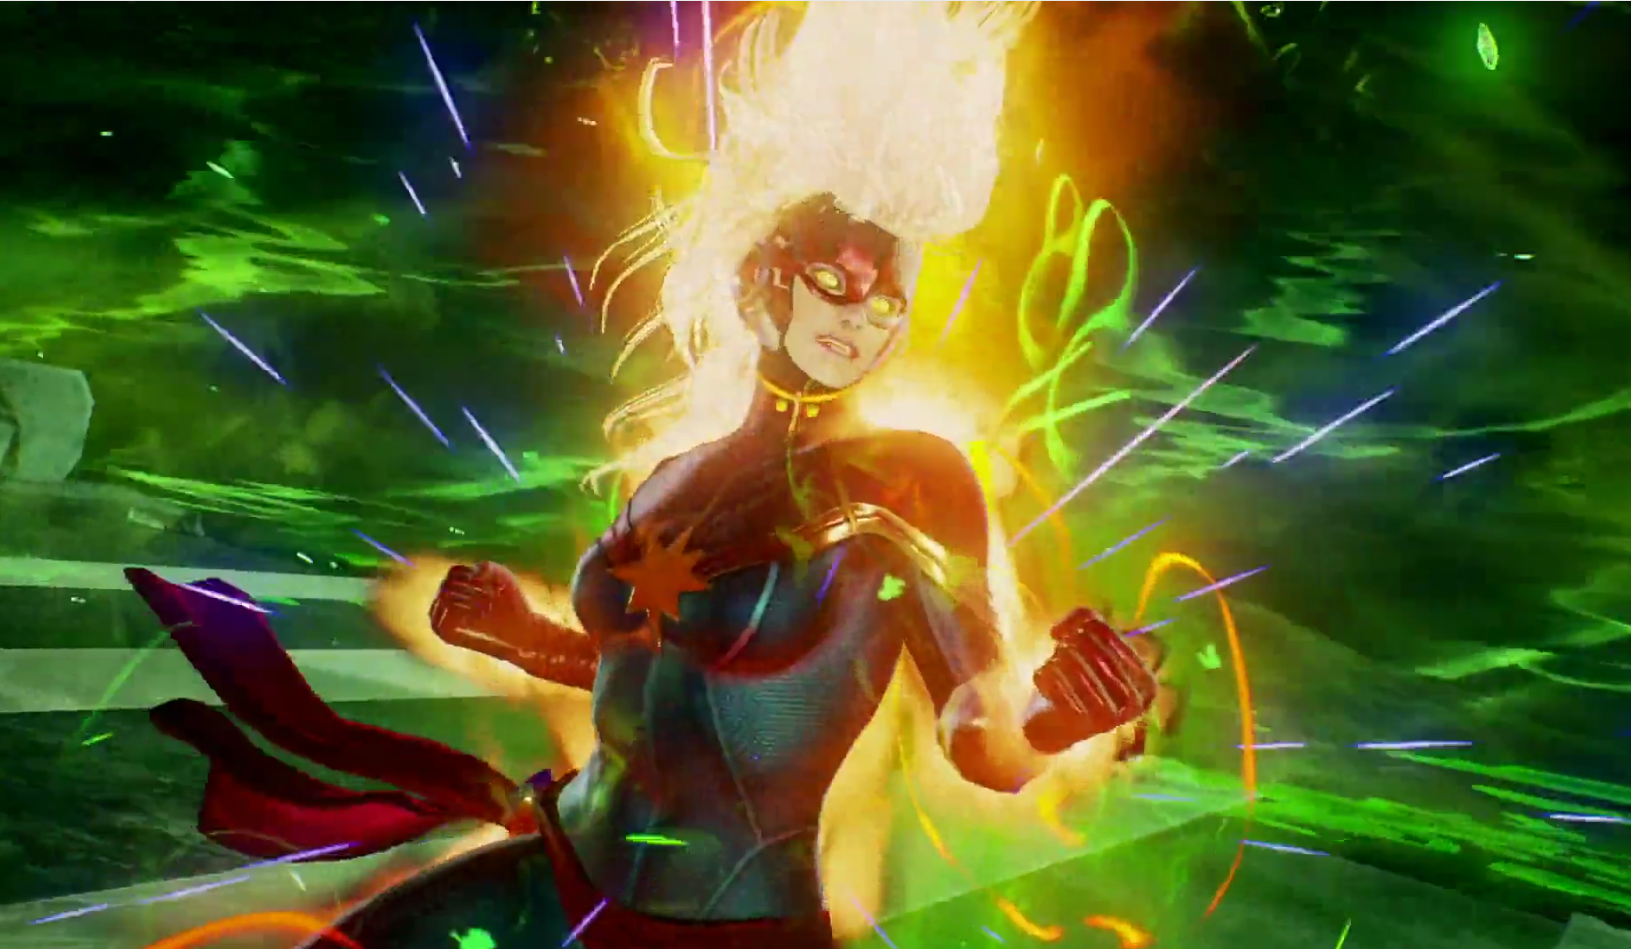 Captain Marvel? More like Captain Marvelous.